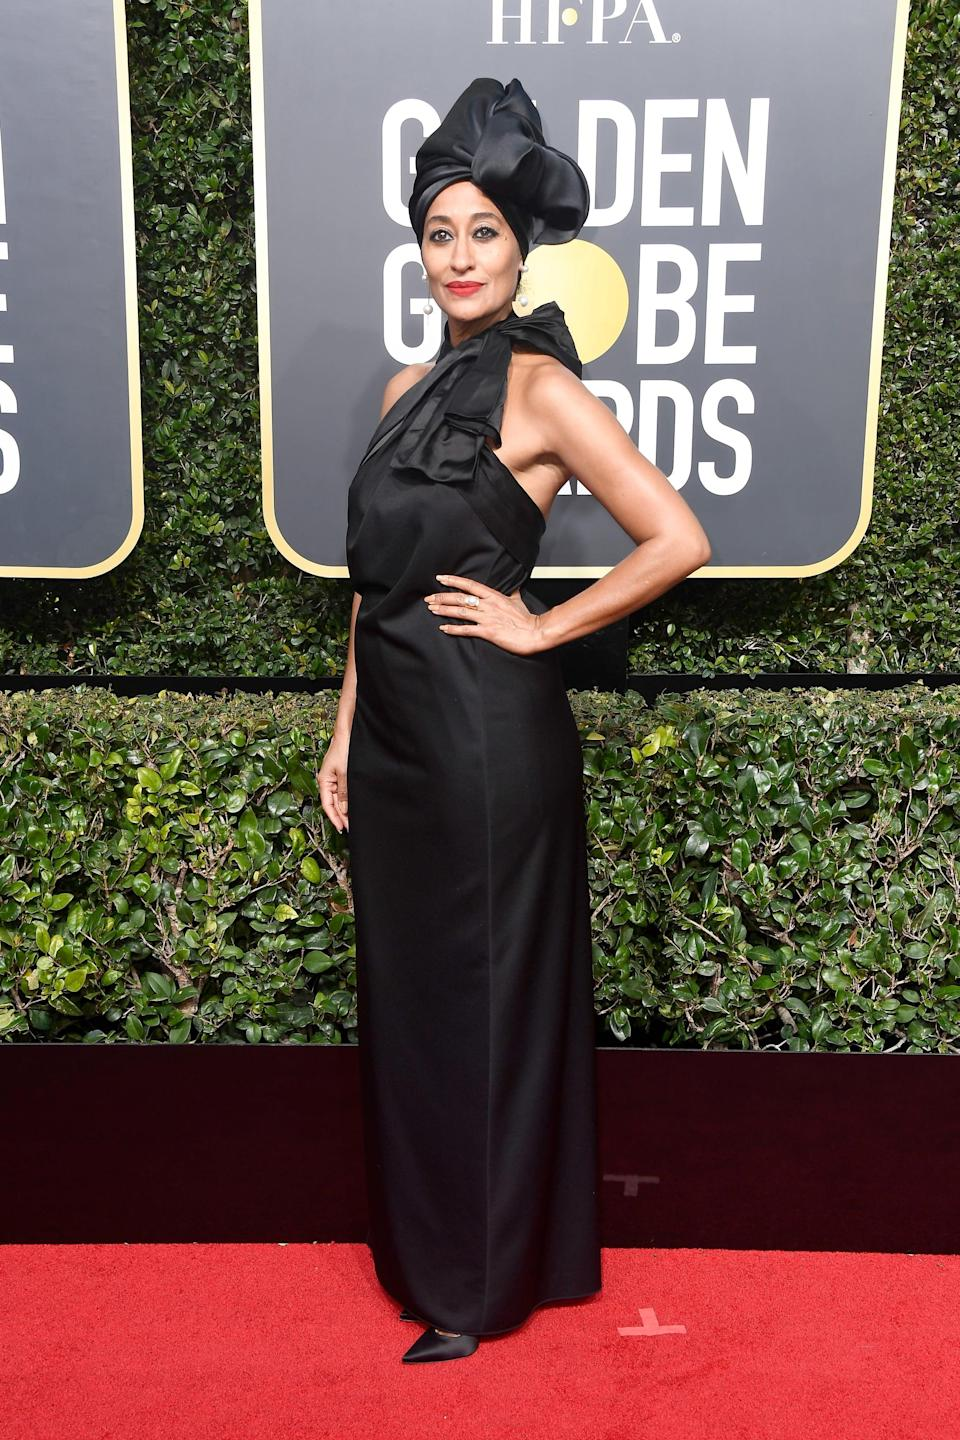 """<p>Wearing a Marc Jacobs Spring 2018 look with a <a href=""""https://www.popsugar.com/beauty/Tracee-Elis-Ross-Golden-Globes-2018-44479565"""" class=""""link rapid-noclick-resp"""" rel=""""nofollow noopener"""" target=""""_blank"""" data-ylk=""""slk:matching headwrap"""">matching headwrap</a> and Irene Neuwirth jewels at the 2018 Globes.</p>"""